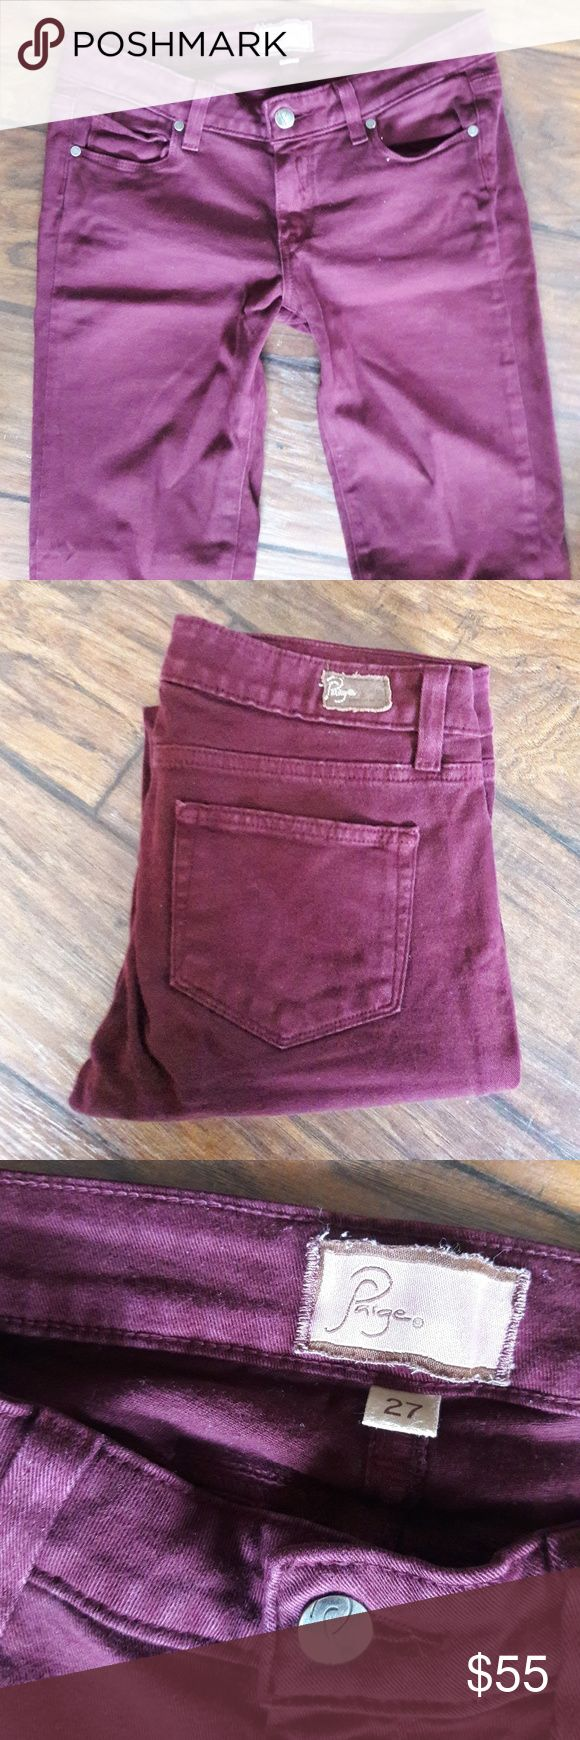 """Paige Maroon Skinny Jeans Size 27 Maroon colored Paige skinny jeans. Size 27.   Measures 15"""" across the waist + 31"""" inseam.   Material is 98% cotton + 2% spandex.   This is a used item: it has been inspected for quality + wear.   Bundle + save!! Offers welcome ☀️🍍☀️ PAIGE Jeans Skinny"""